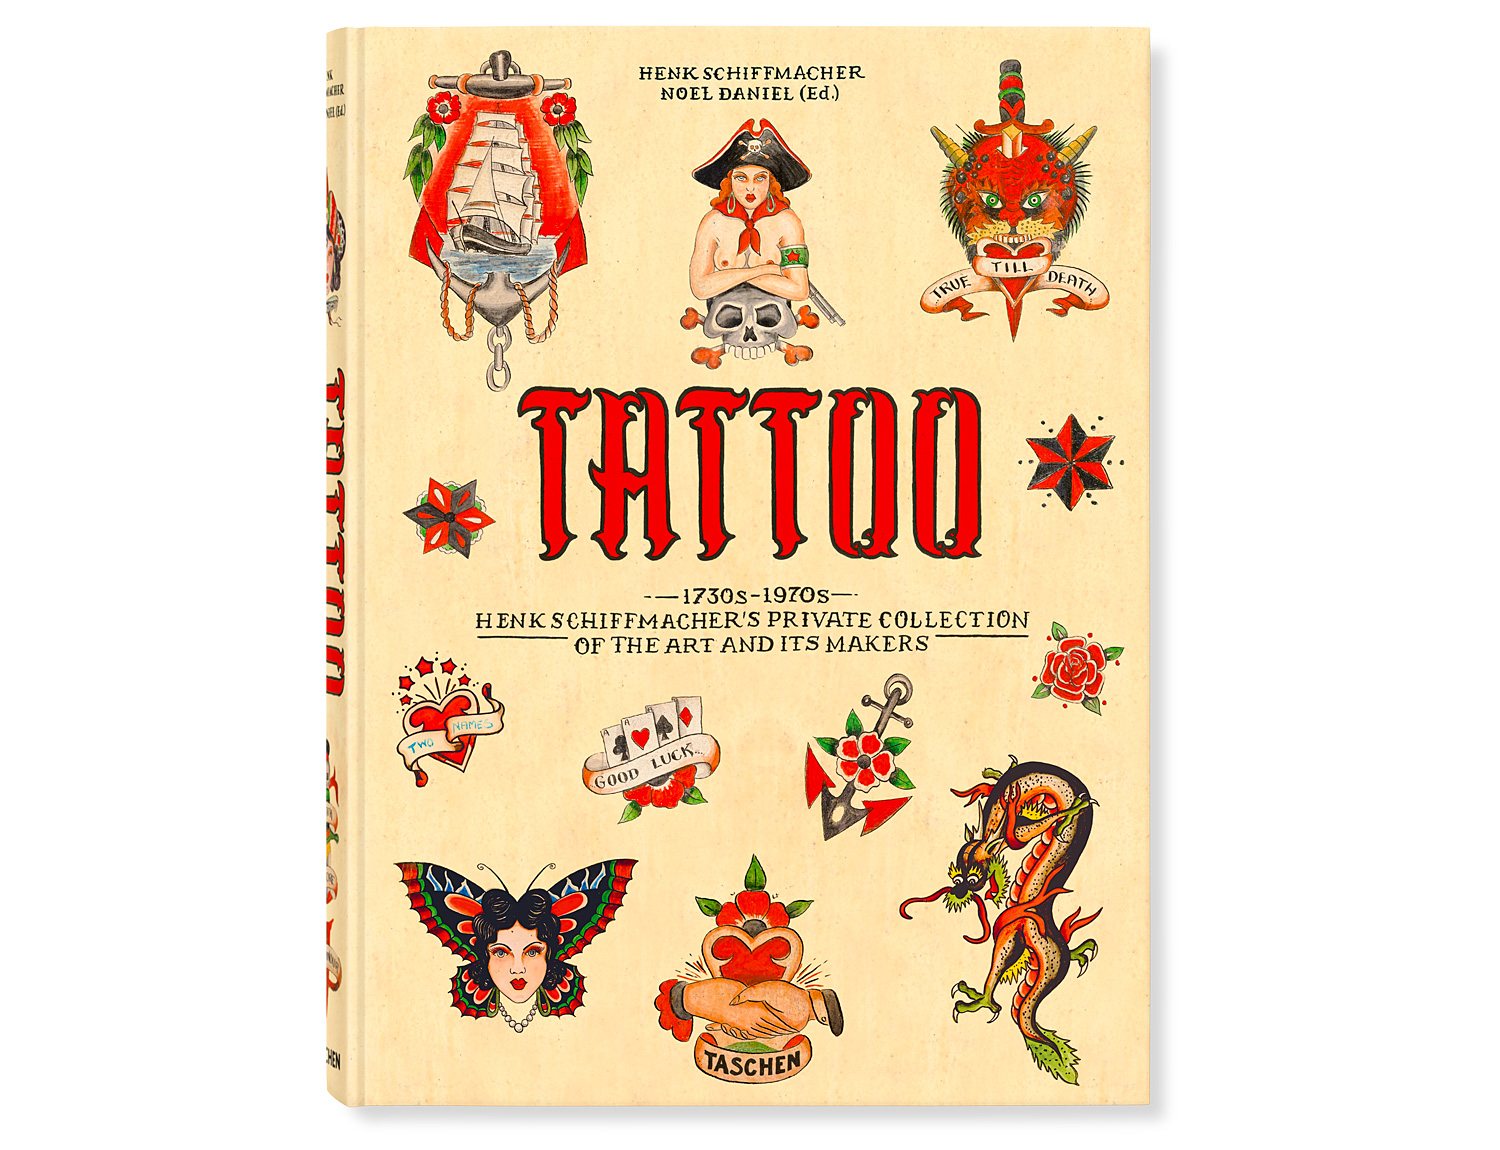 TATTOO. 1730s-1970s. Henk Schiffmacher's Private Collection. at werd.com